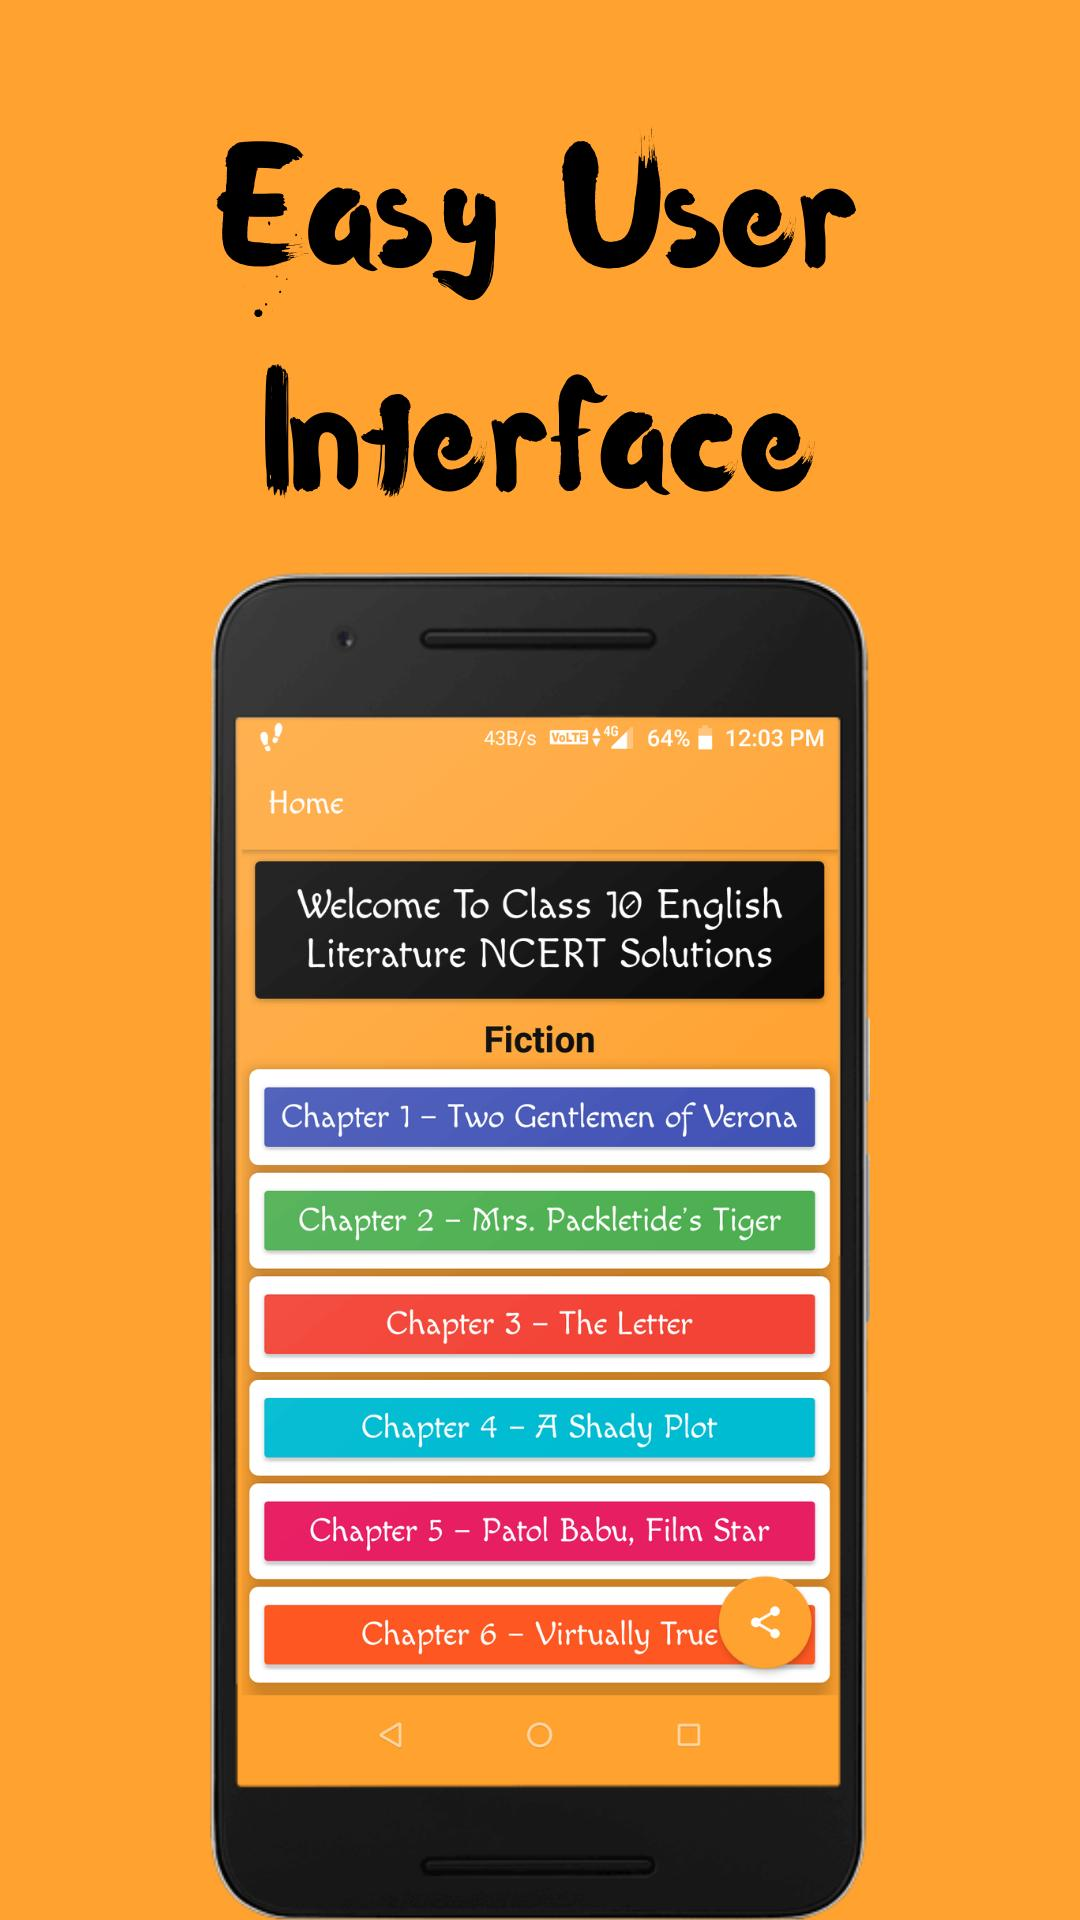 Class 10 English Literature NCERT Solutions for Android